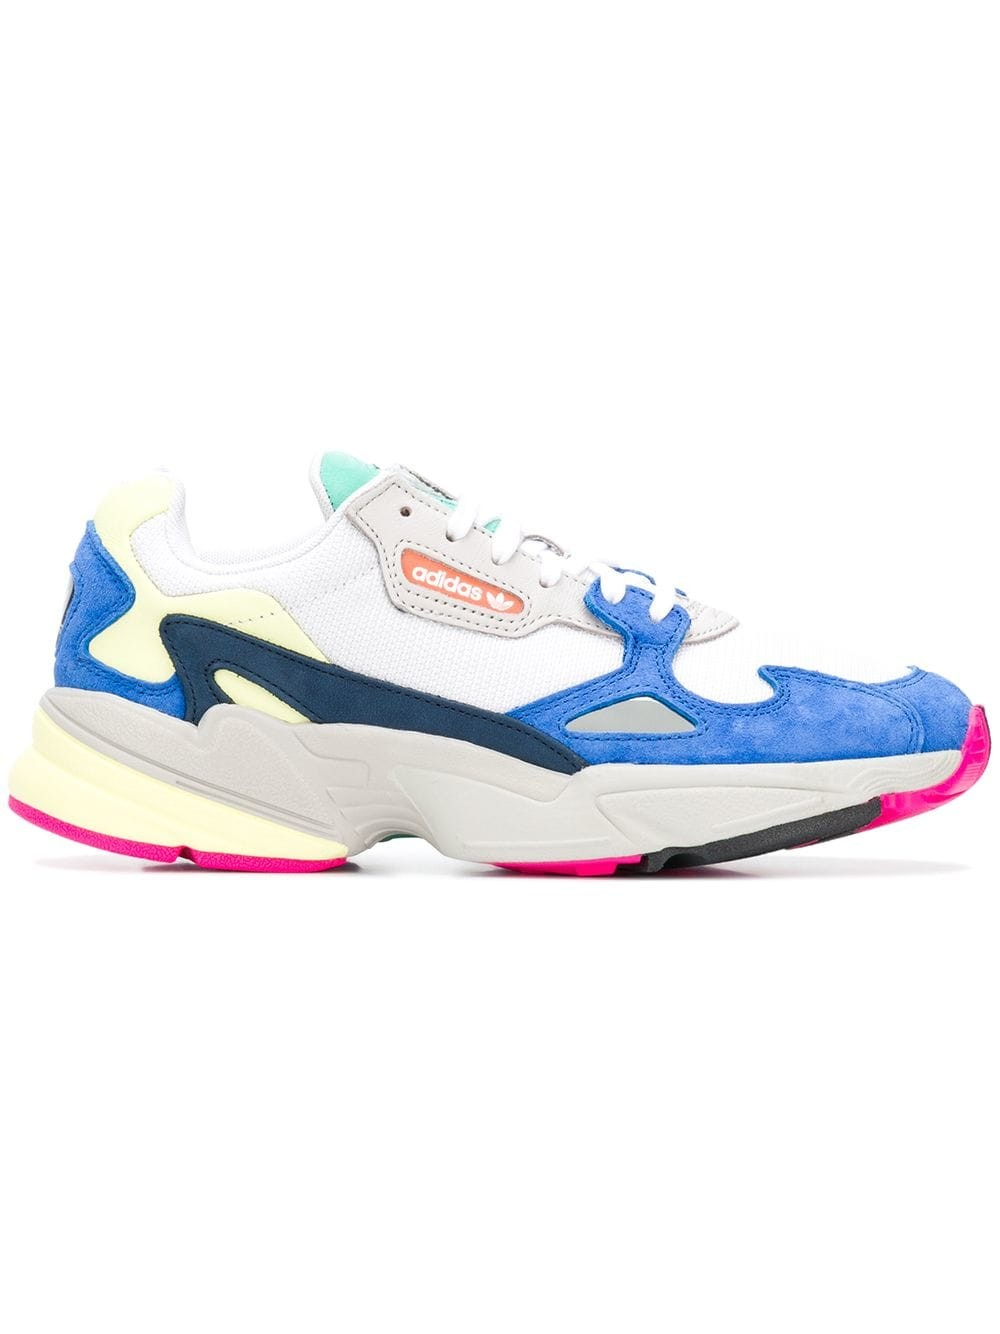 Adidas Originals Falcon Femme BB9174 Bleu/Jaune/Rose